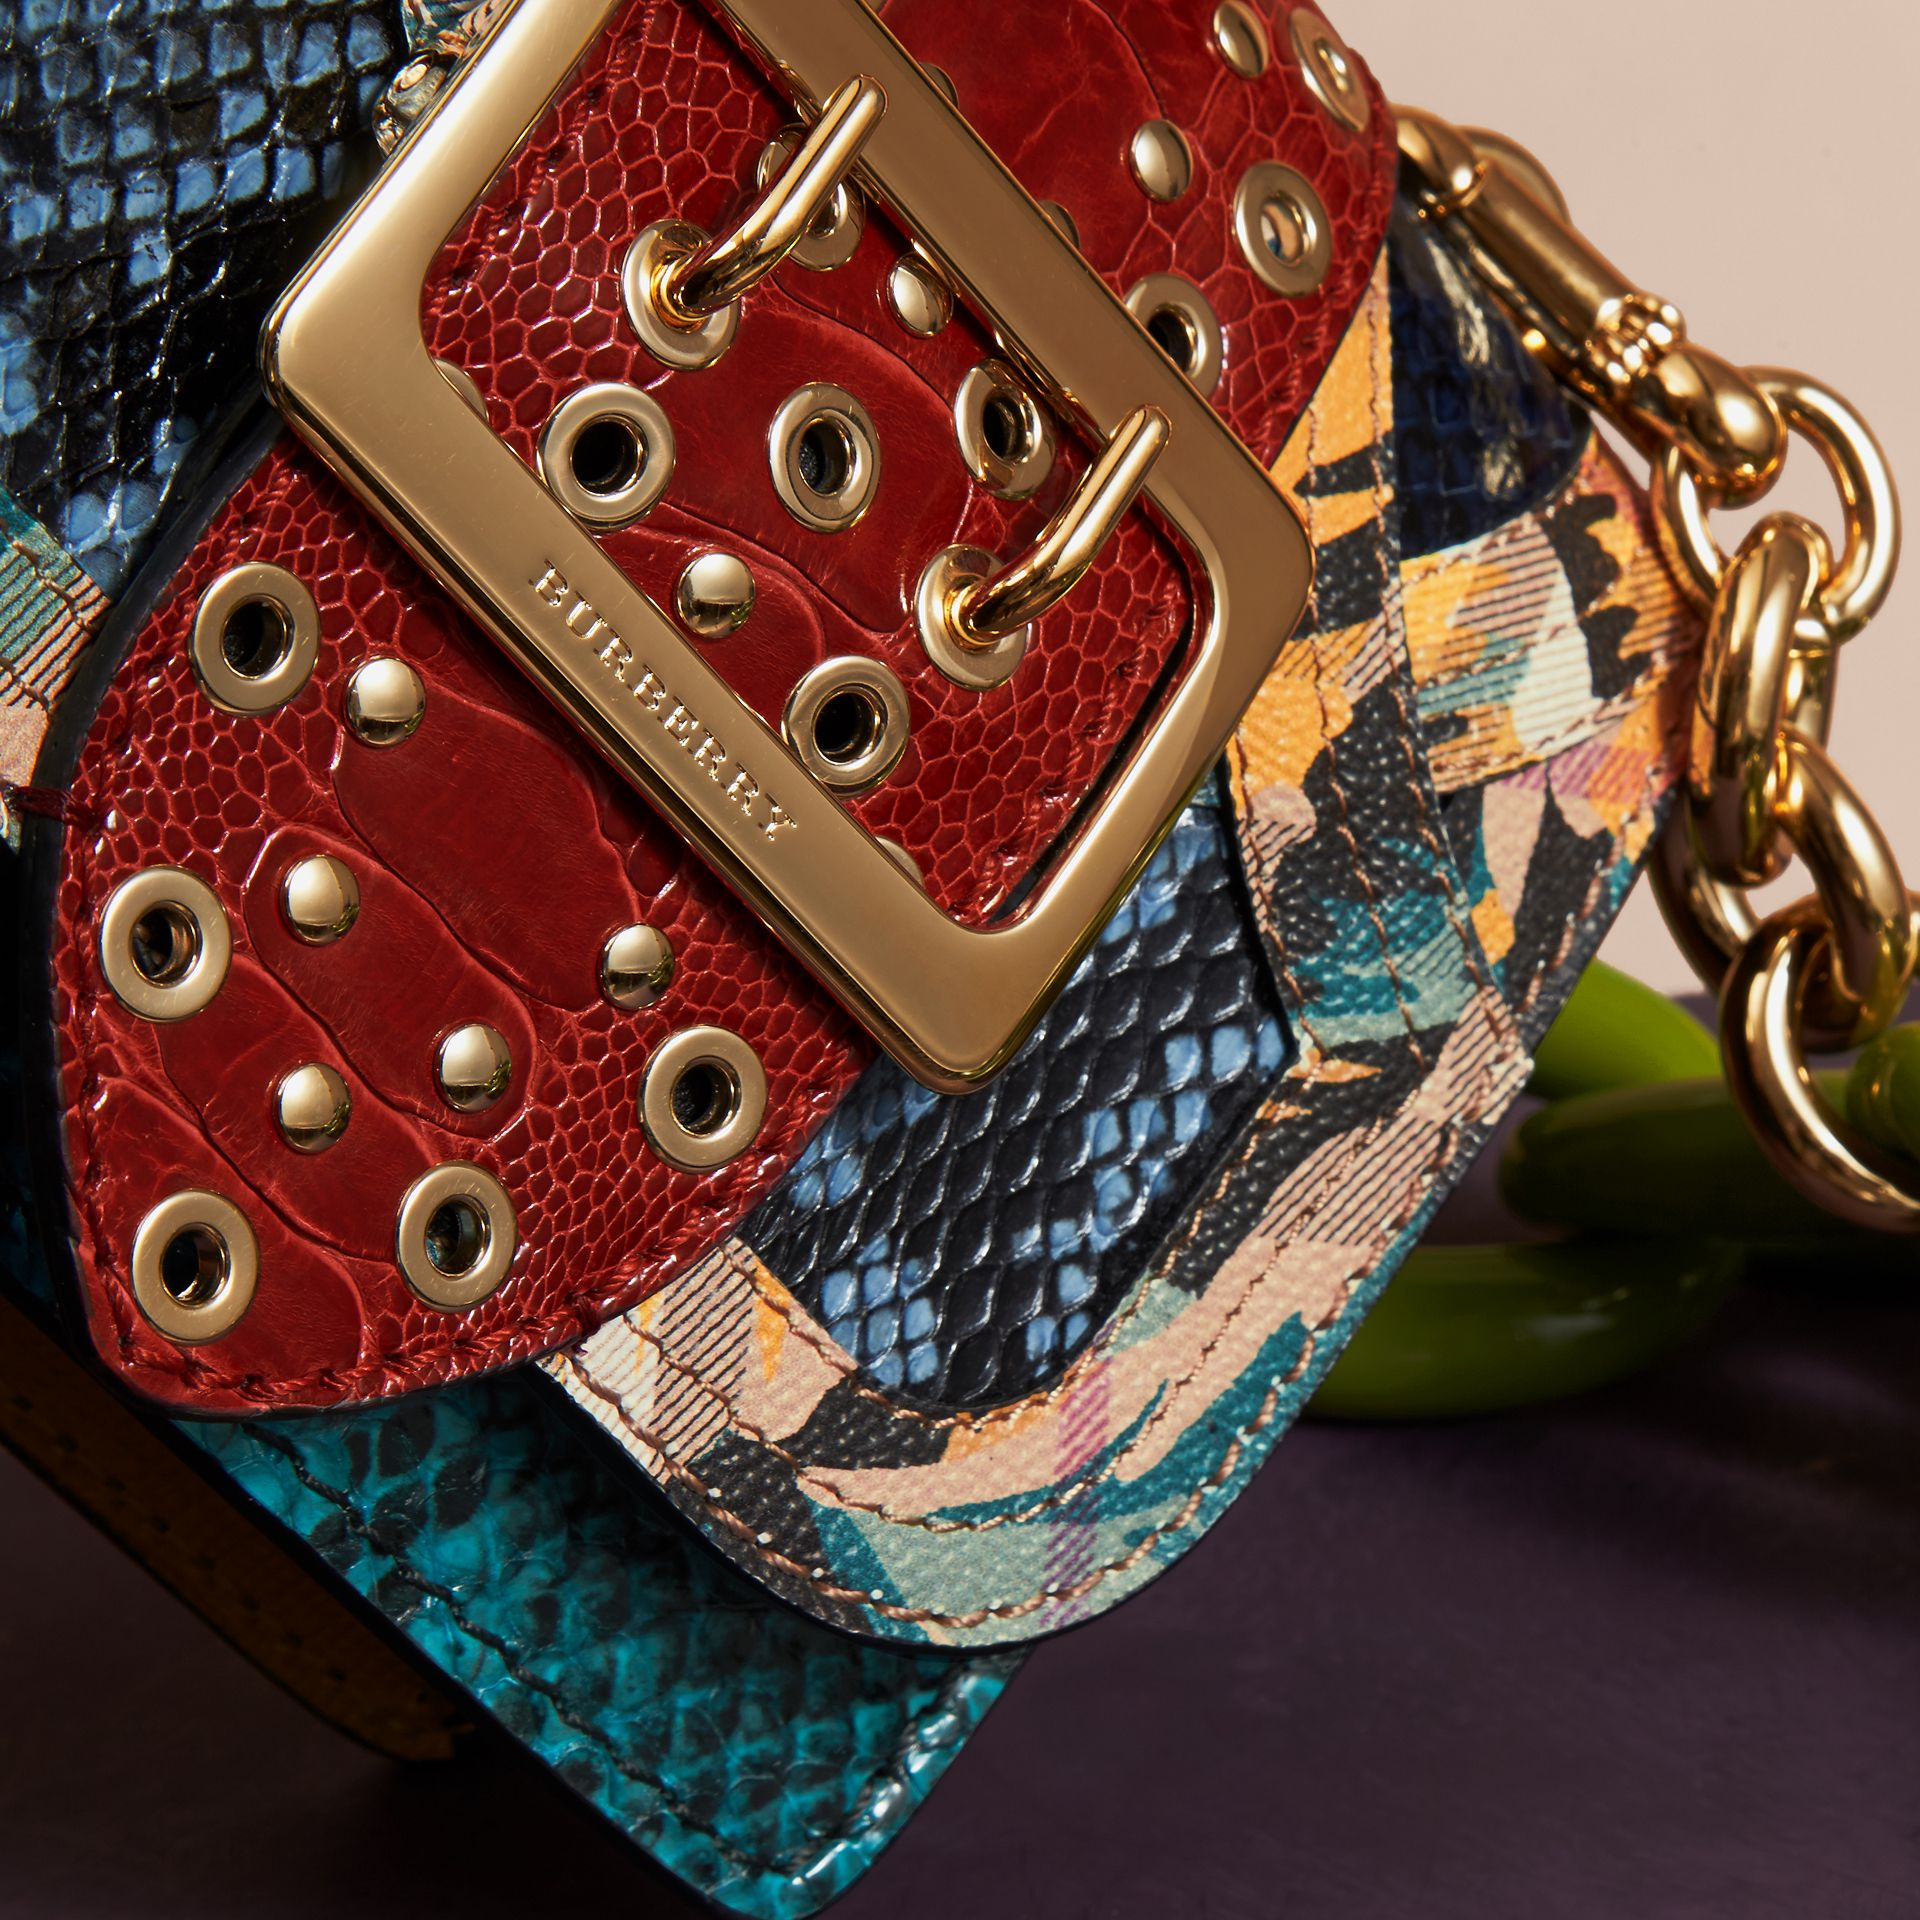 Pewter blue The Mini Square Buckle Bag in Snakeskin, Ostrich and Floral Print - gallery image 2